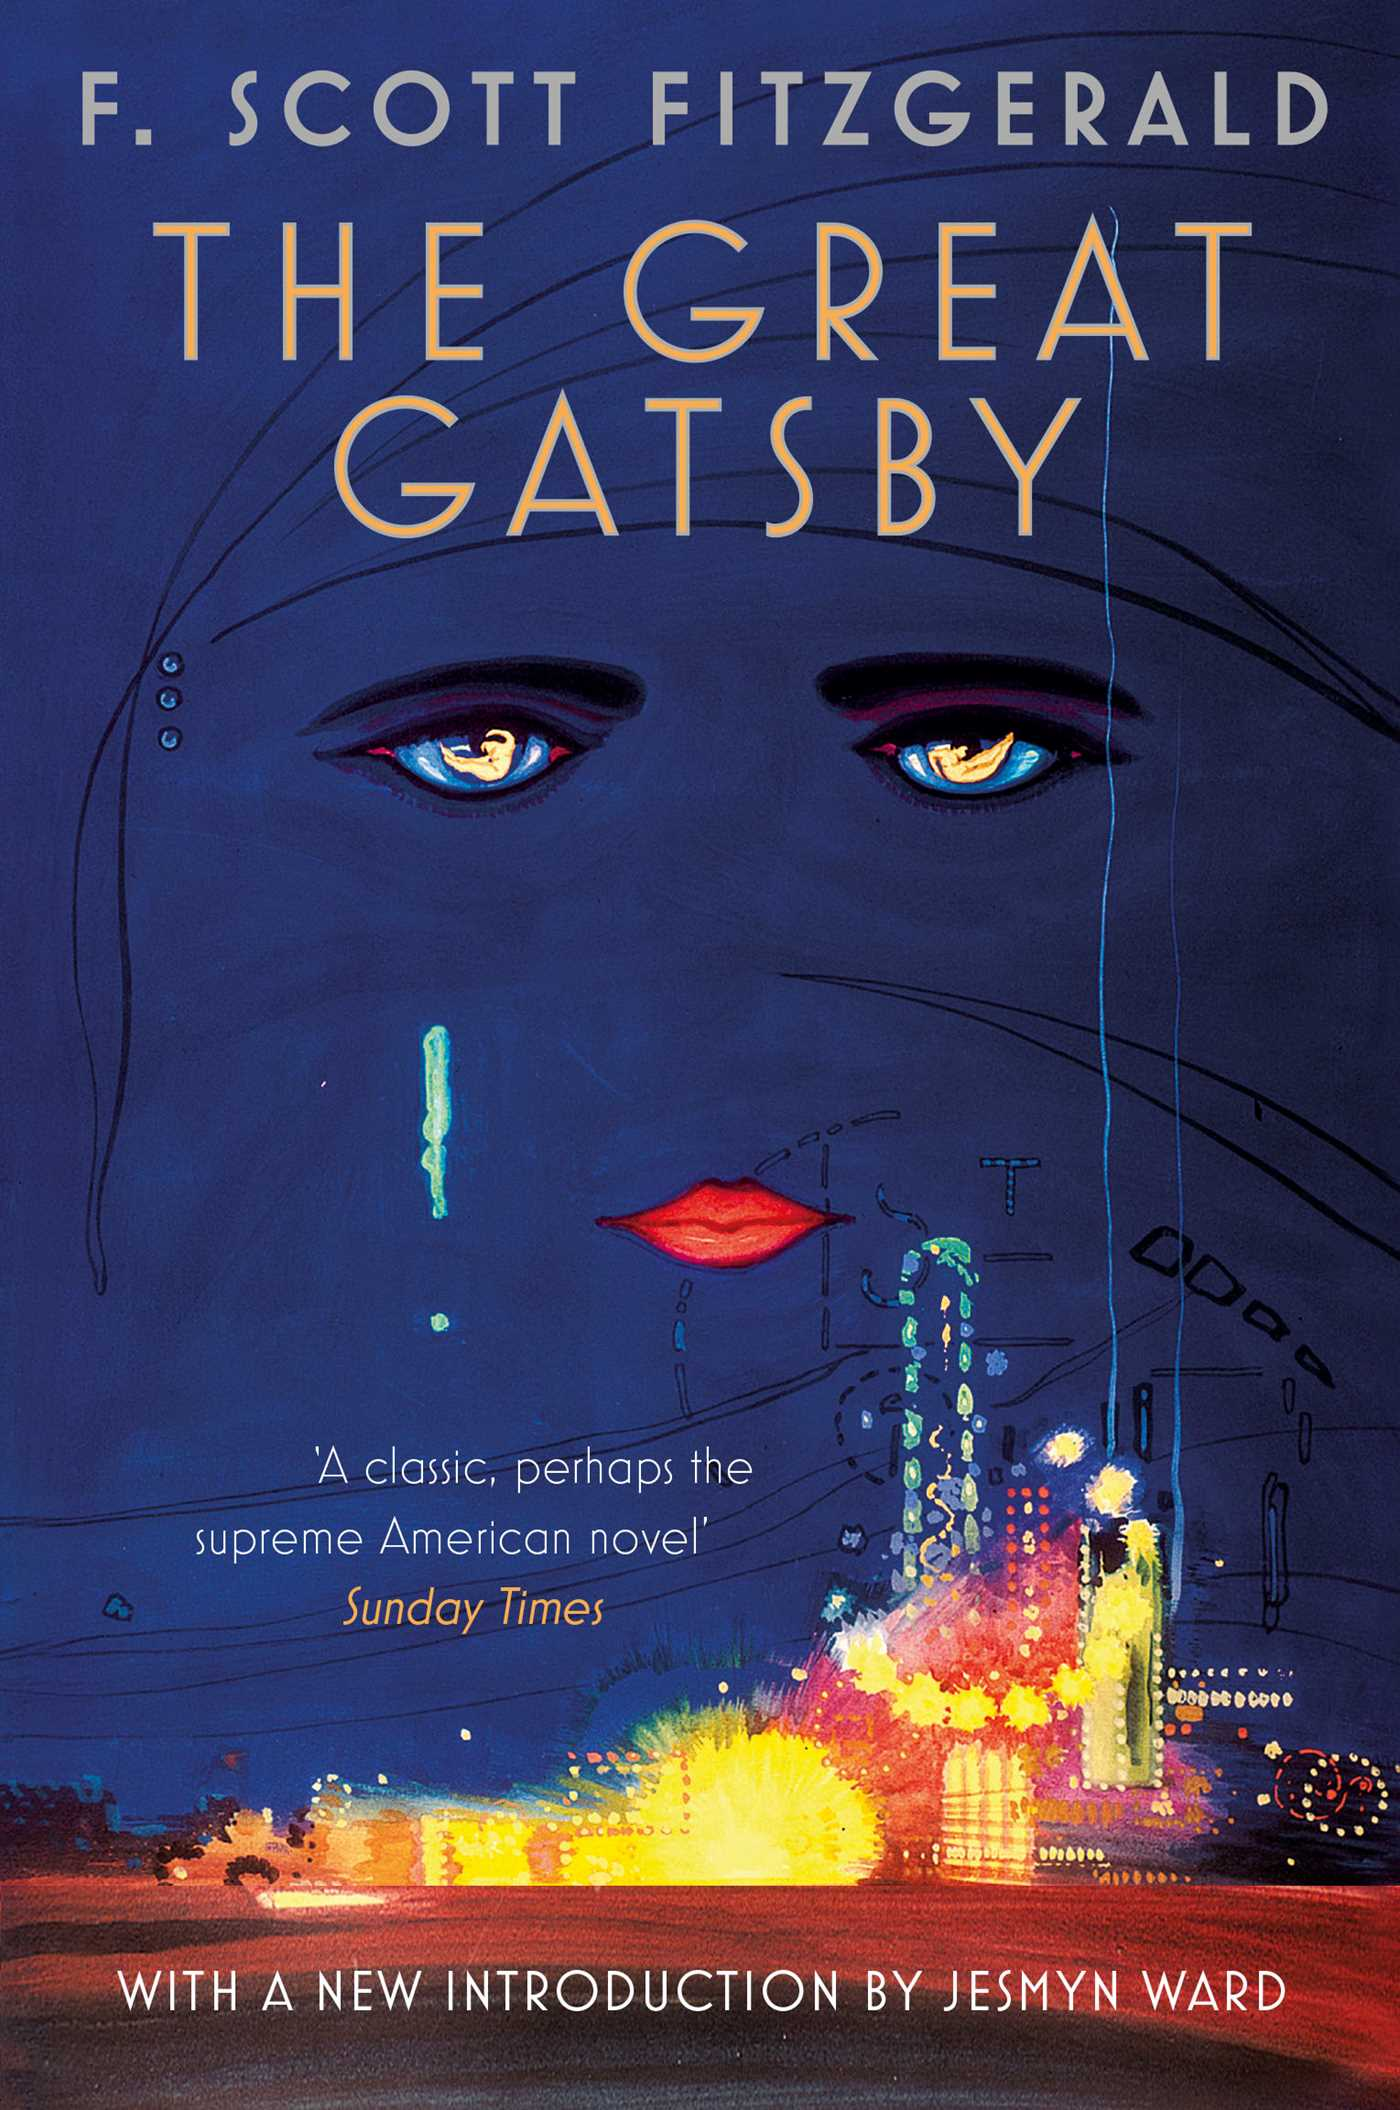 The great gatsby 9781471173943 hr